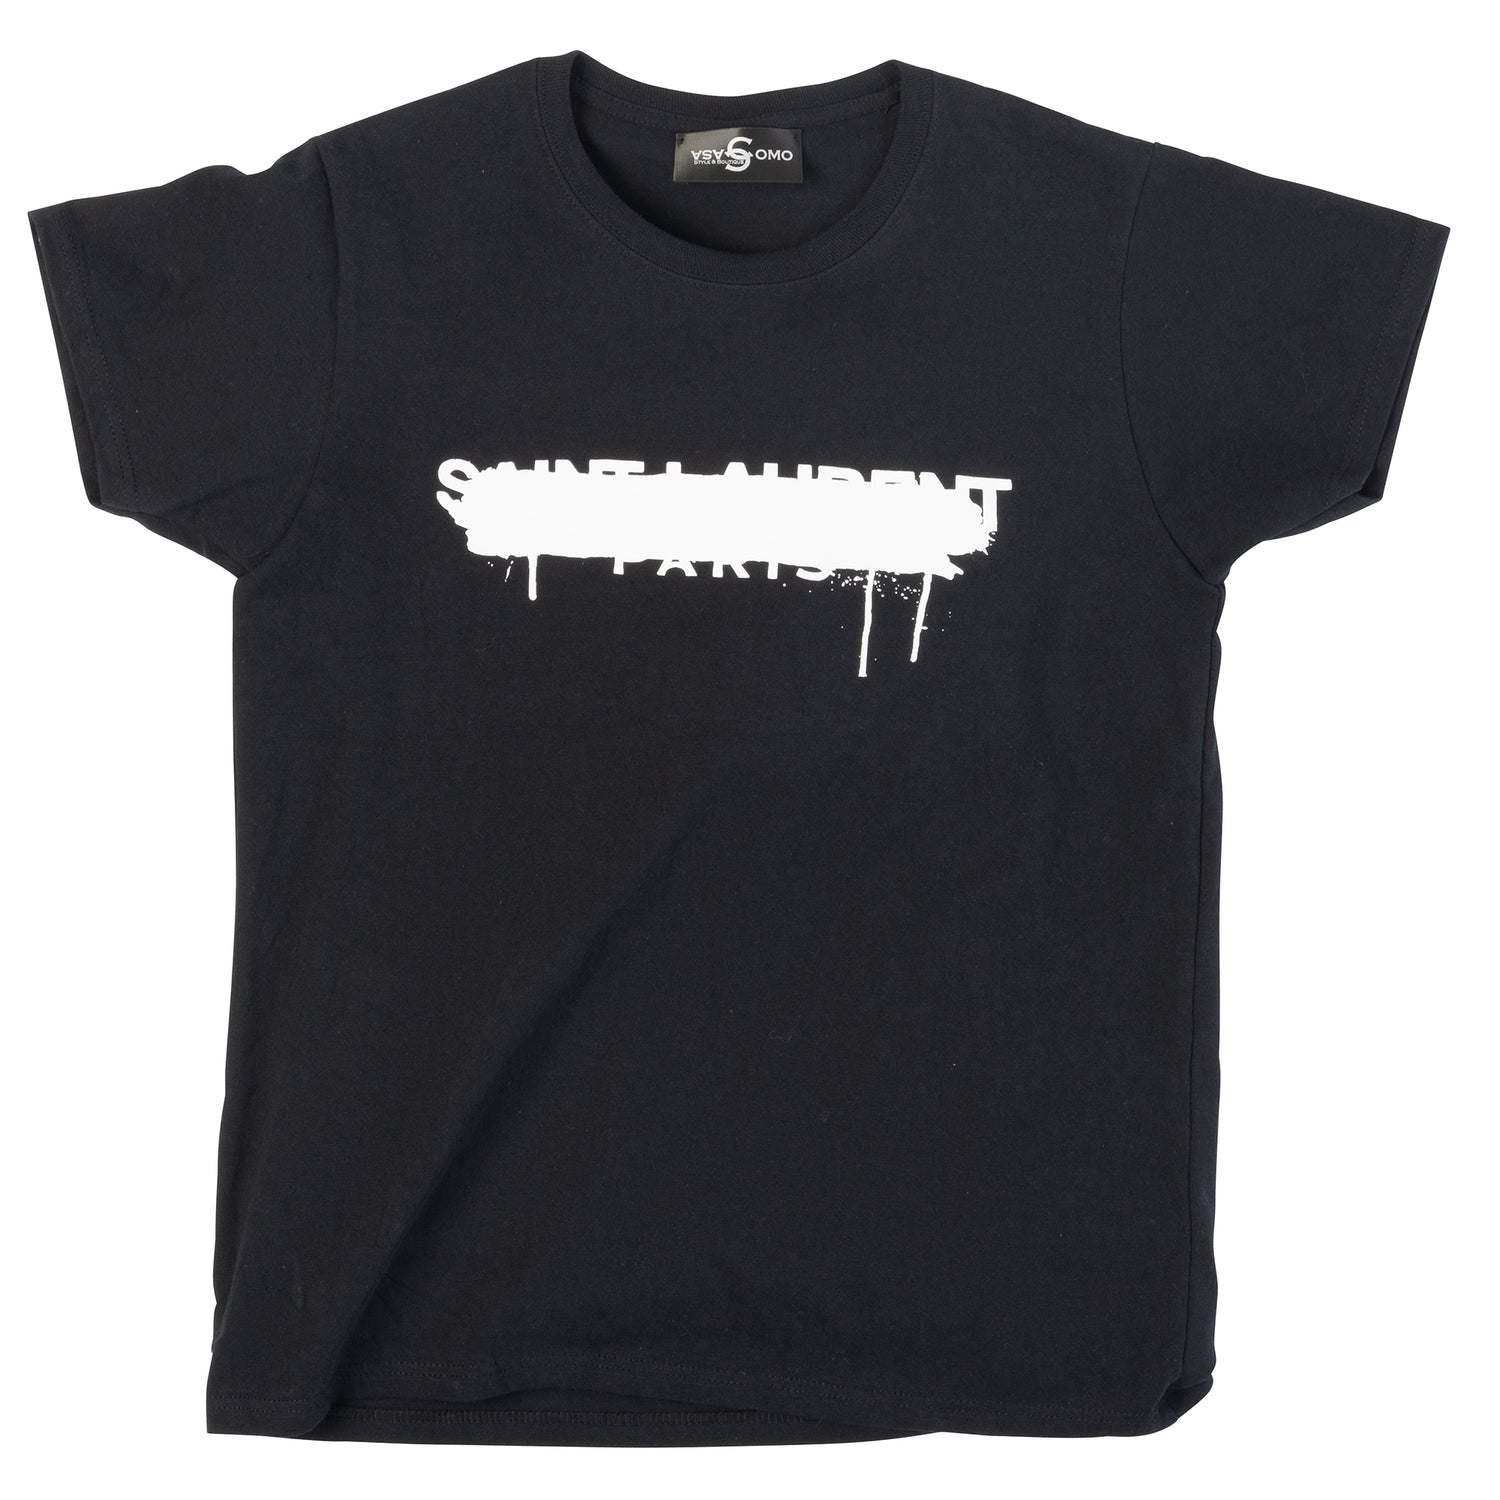 SAINT LAURENT CROSS TEE - casacomostyle